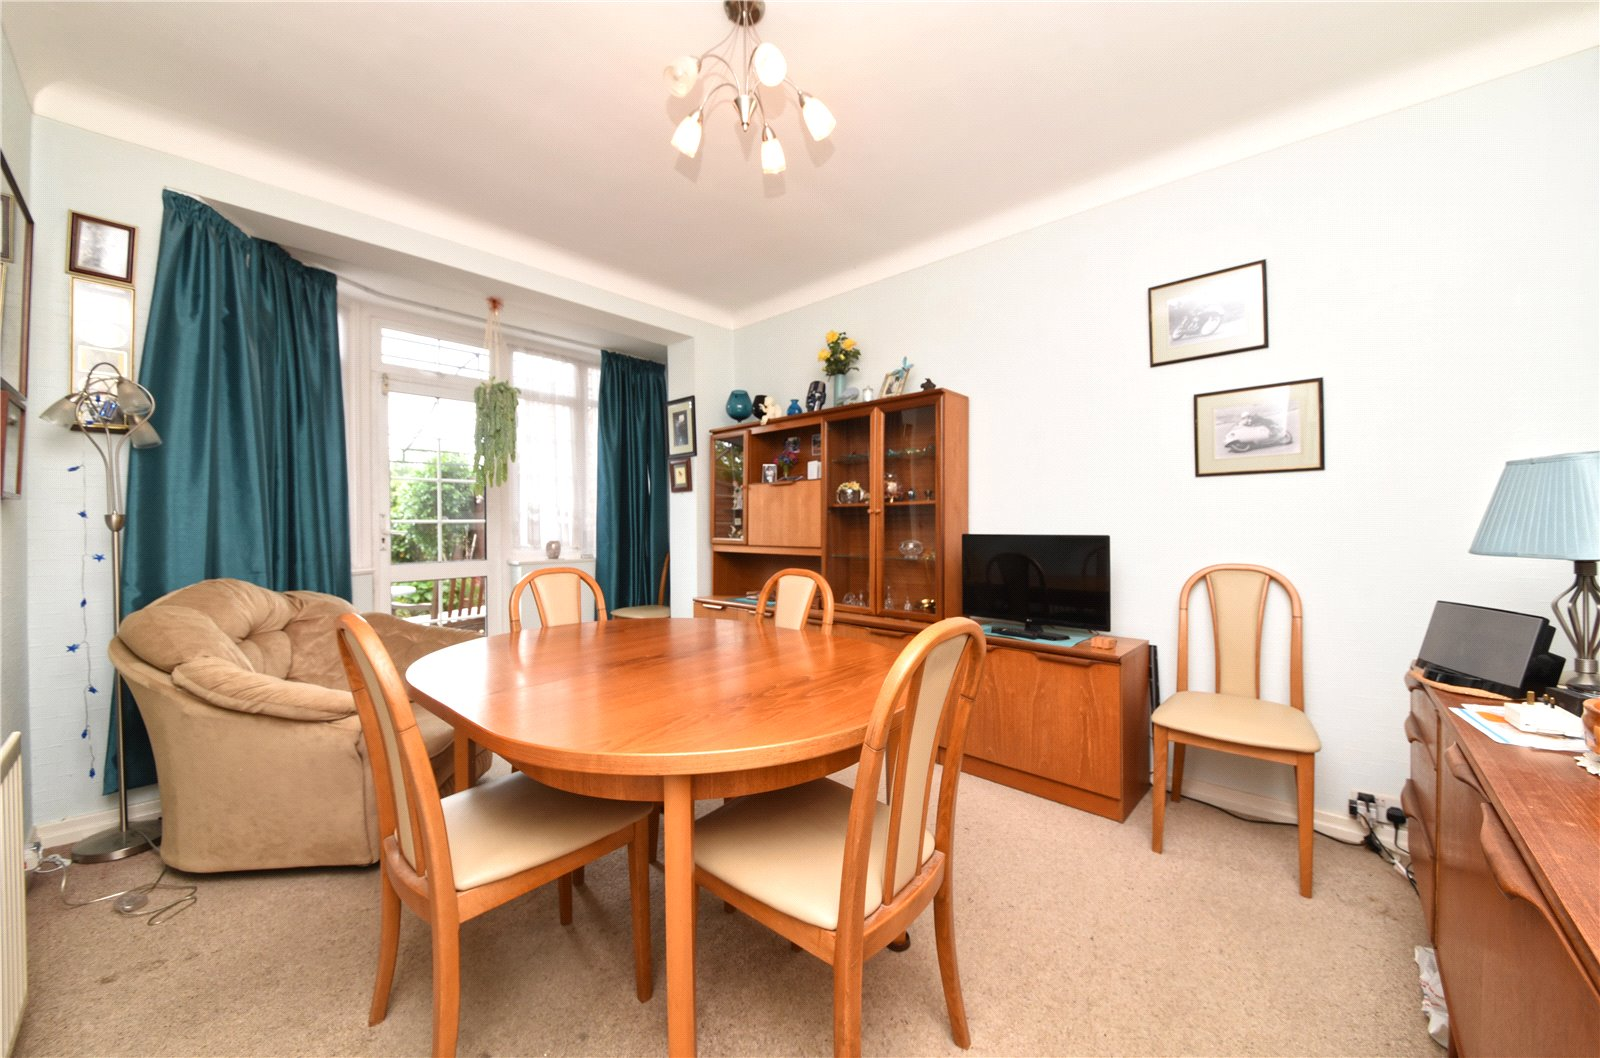 3 bed house for sale in London, N12 9ND  - Property Image 5